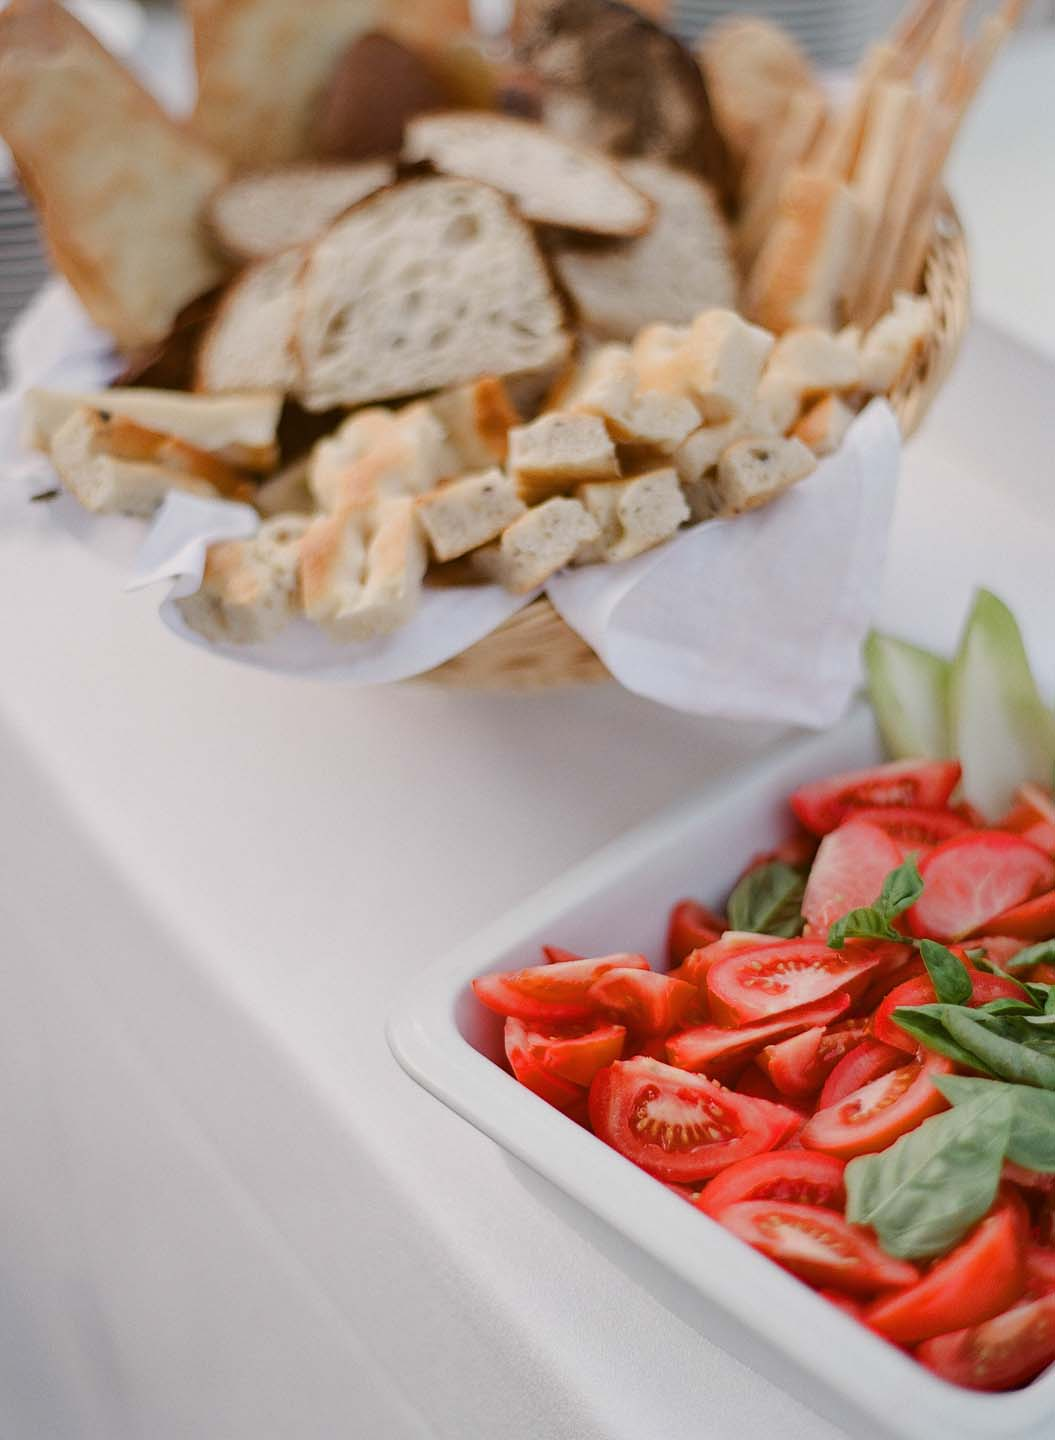 fresh tomatoes and homemade bread